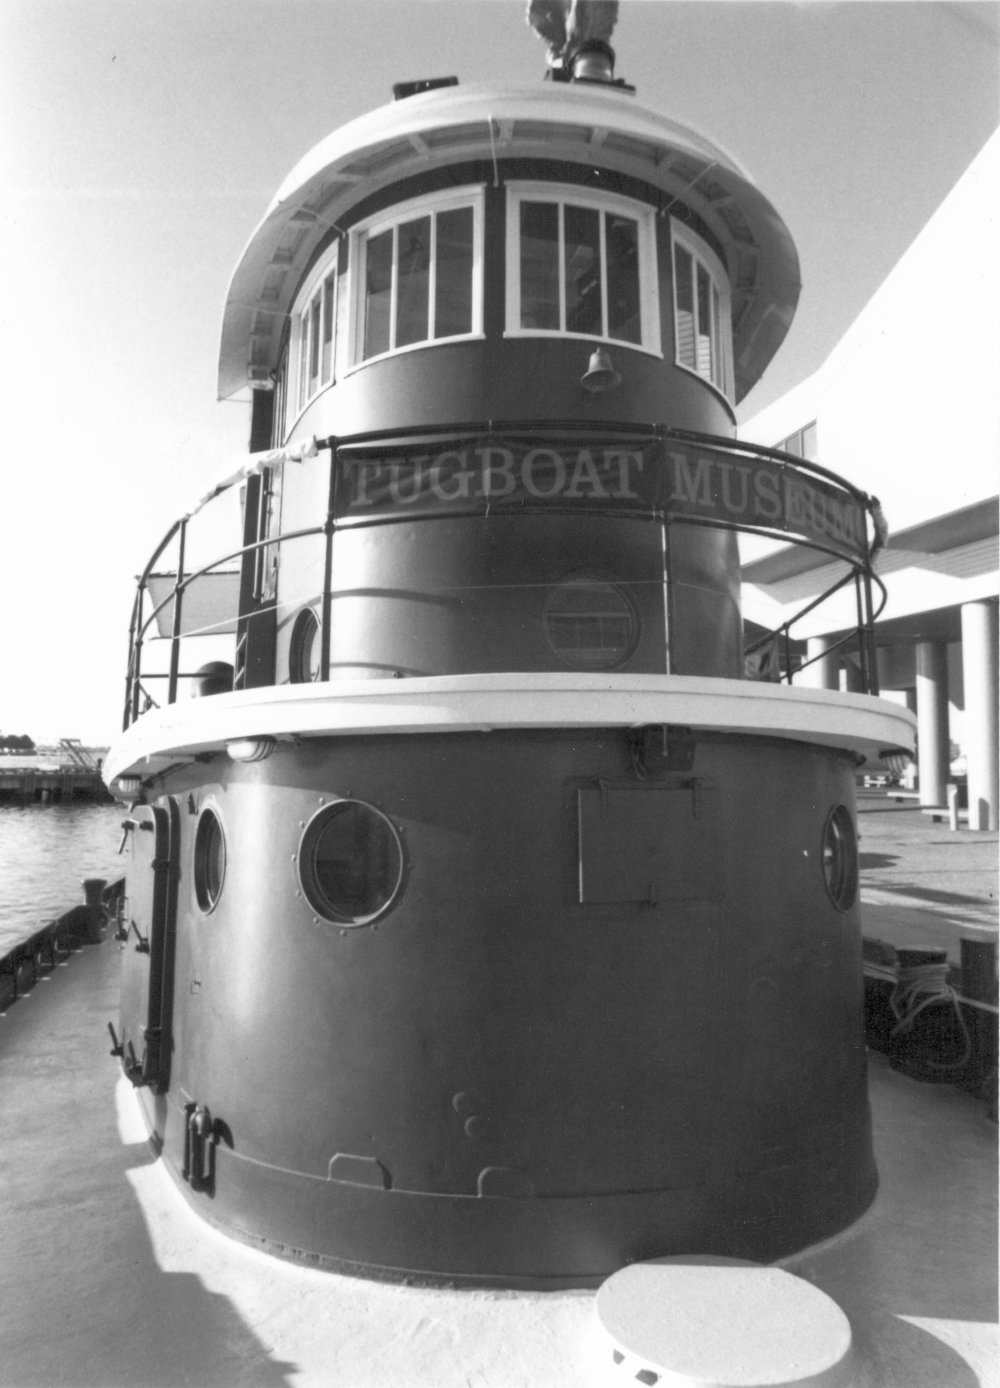 The pilot house as seen in the National Register of Historic Places (now de-listed).